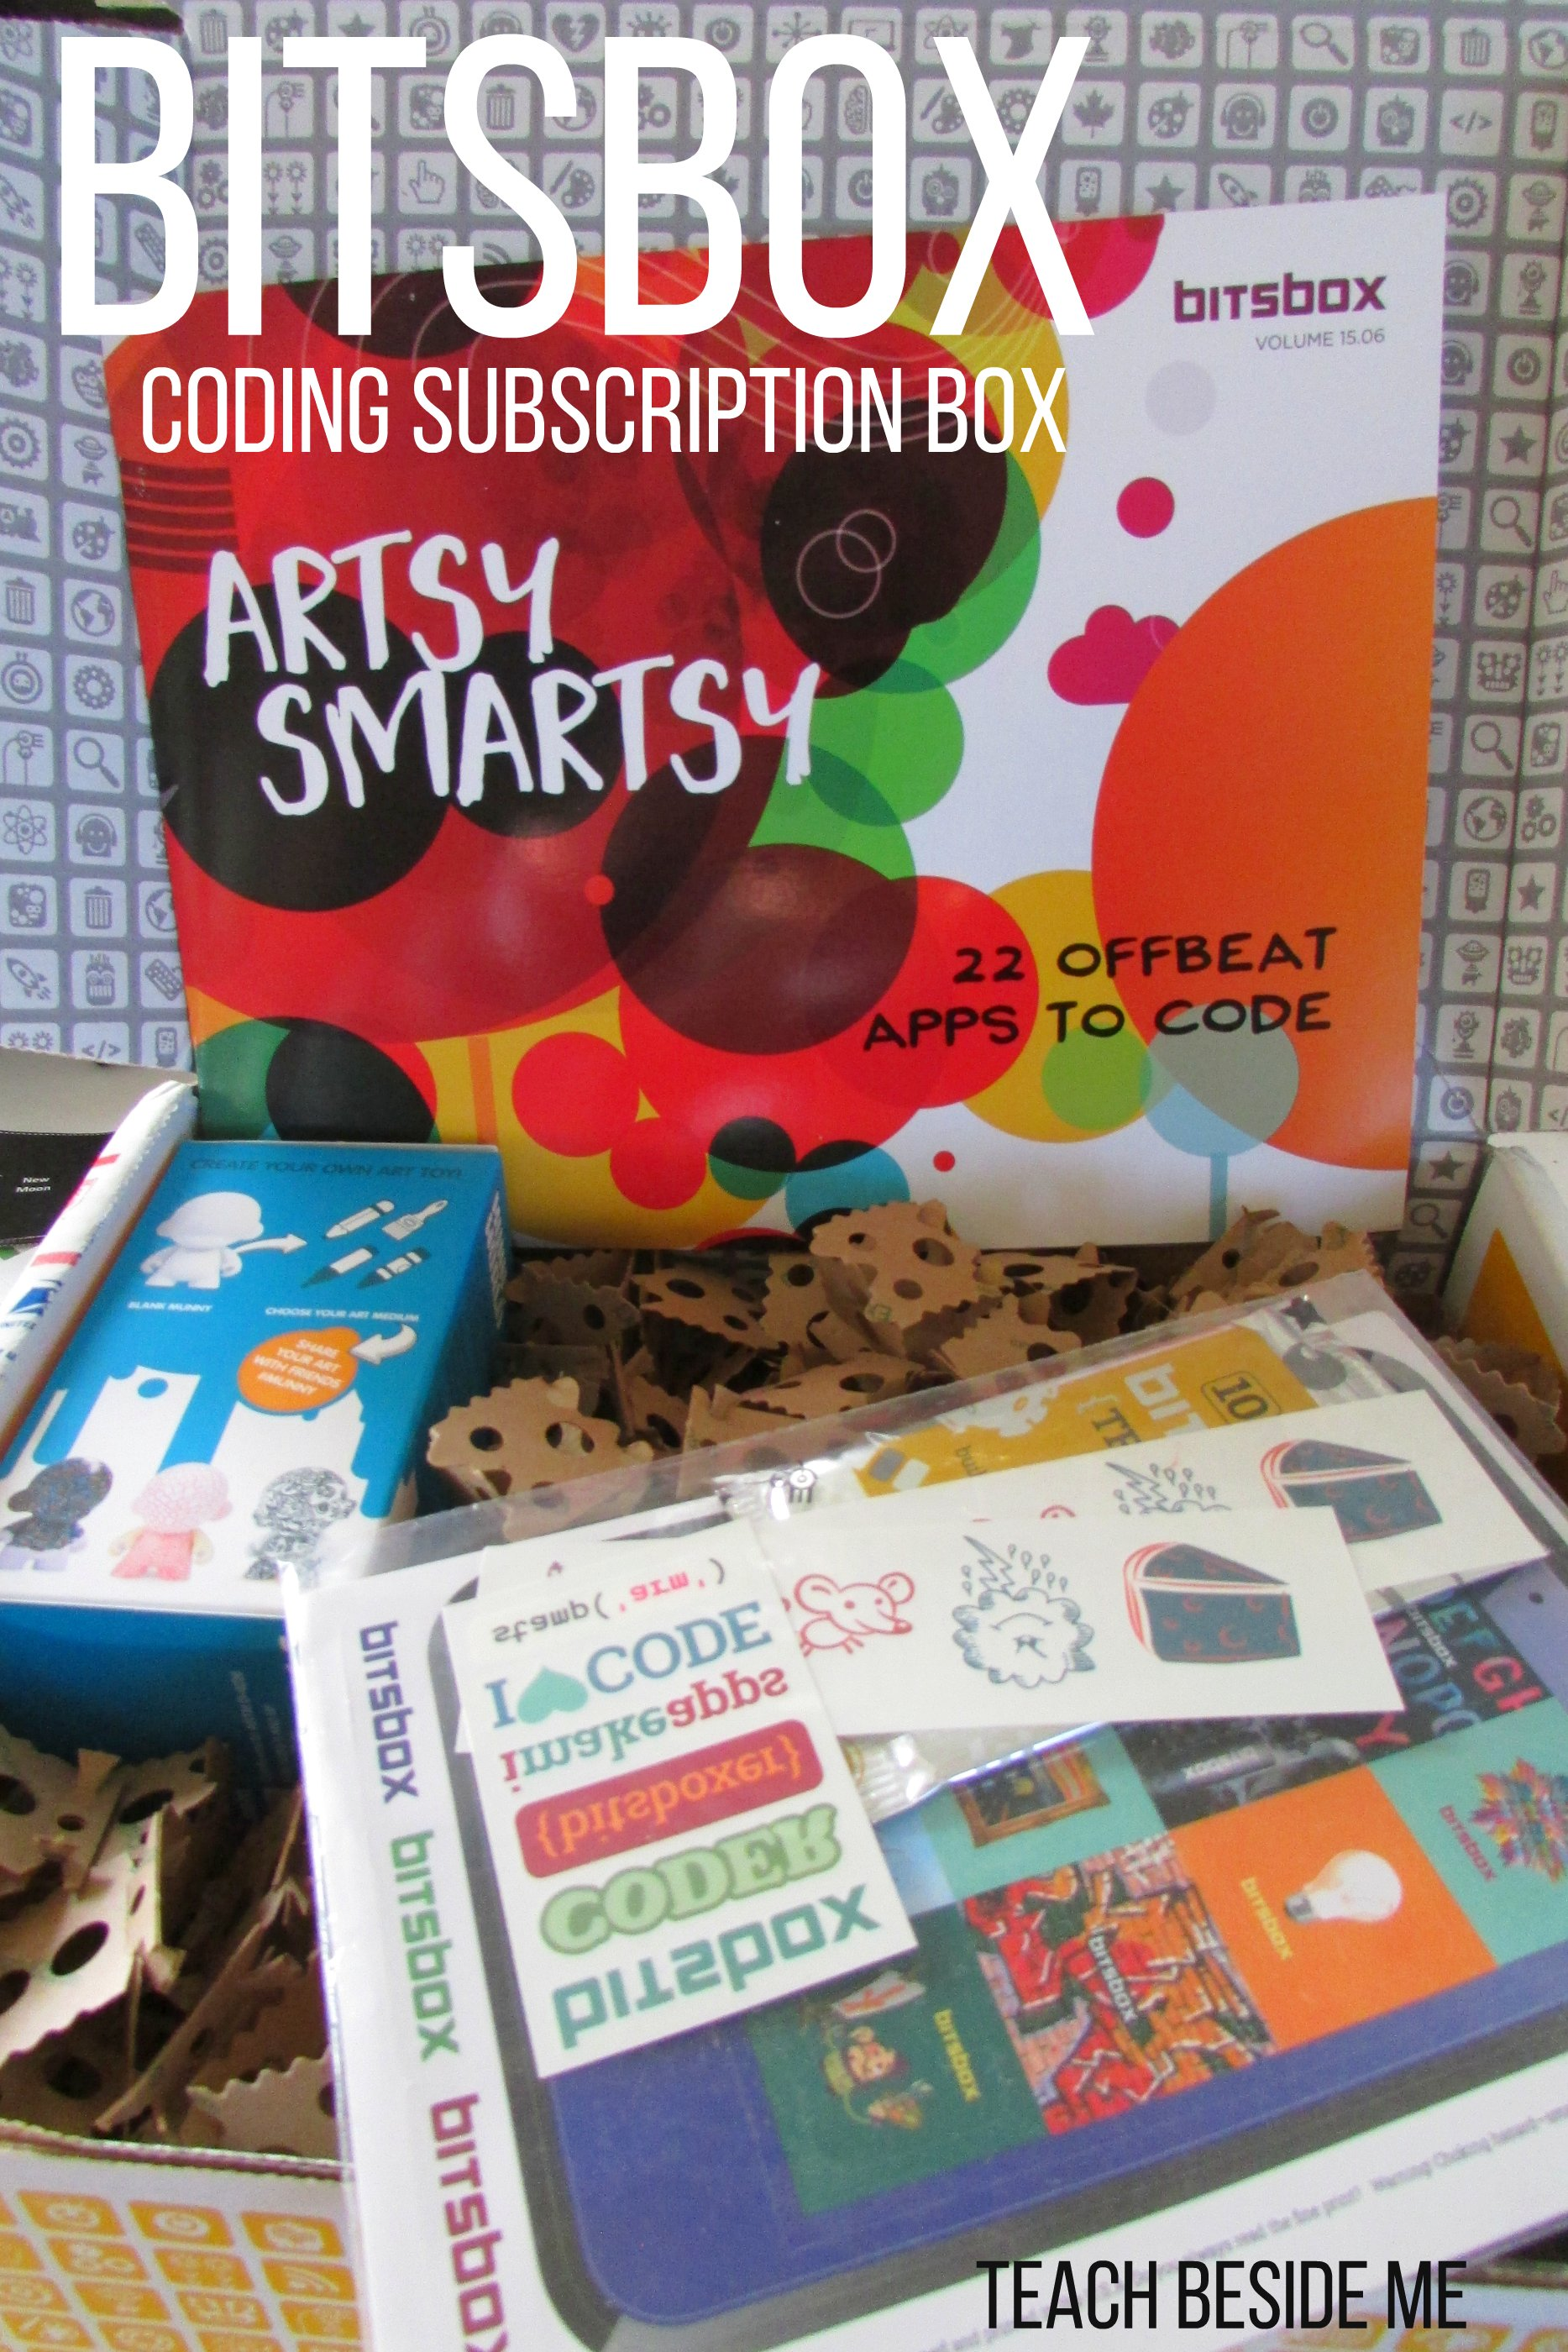 bitsbox- conding subscription box for kids